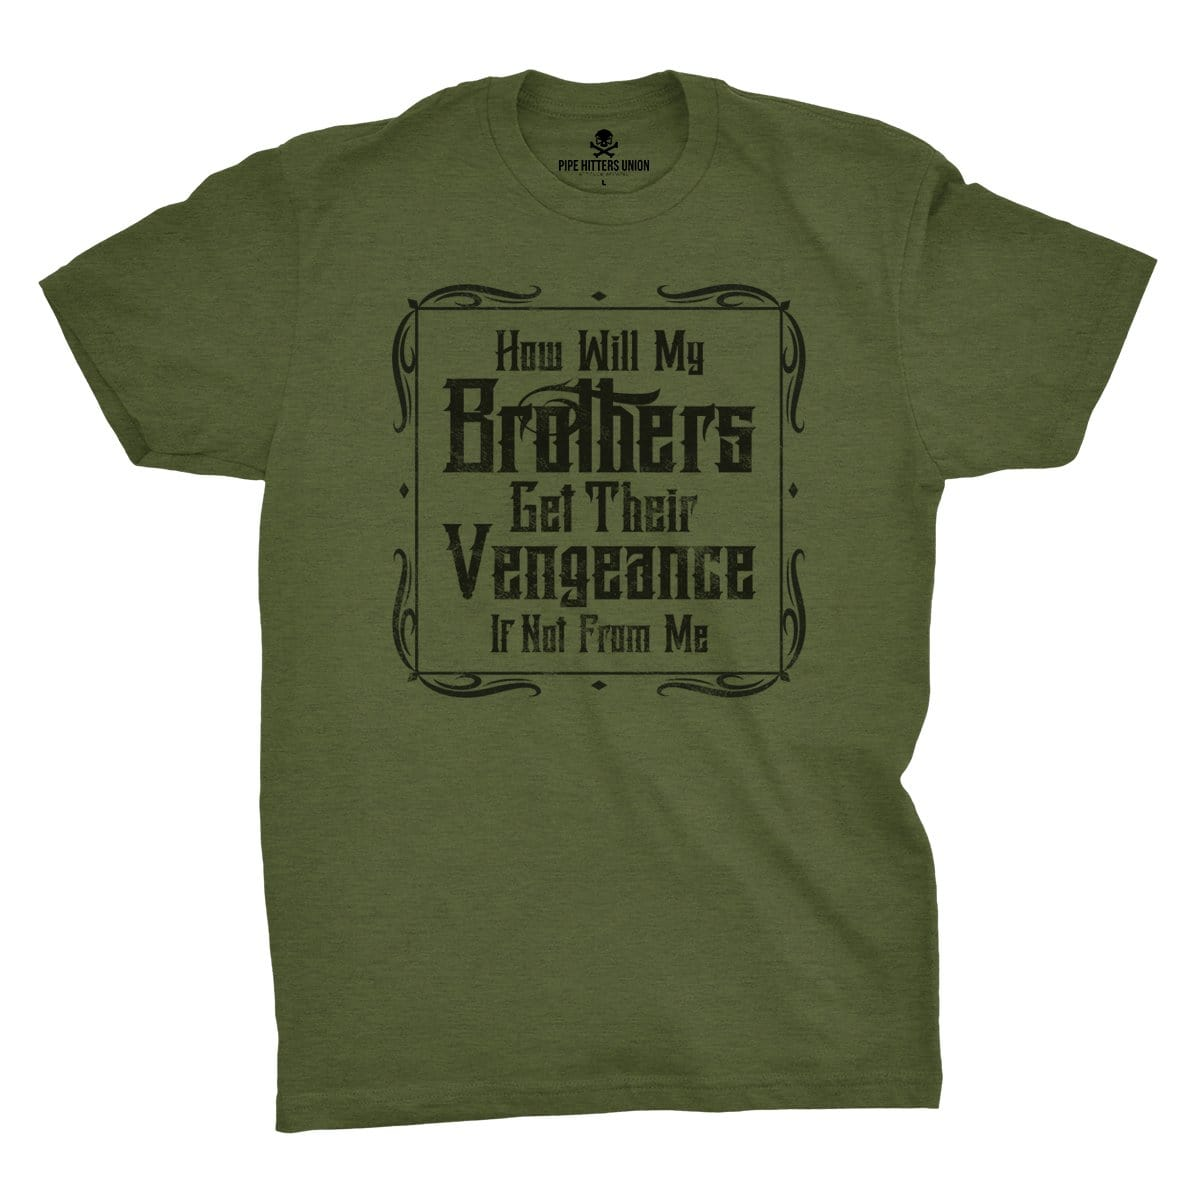 Brother's Vengeance - Military Green - T-Shirts - Pipe Hitters Union